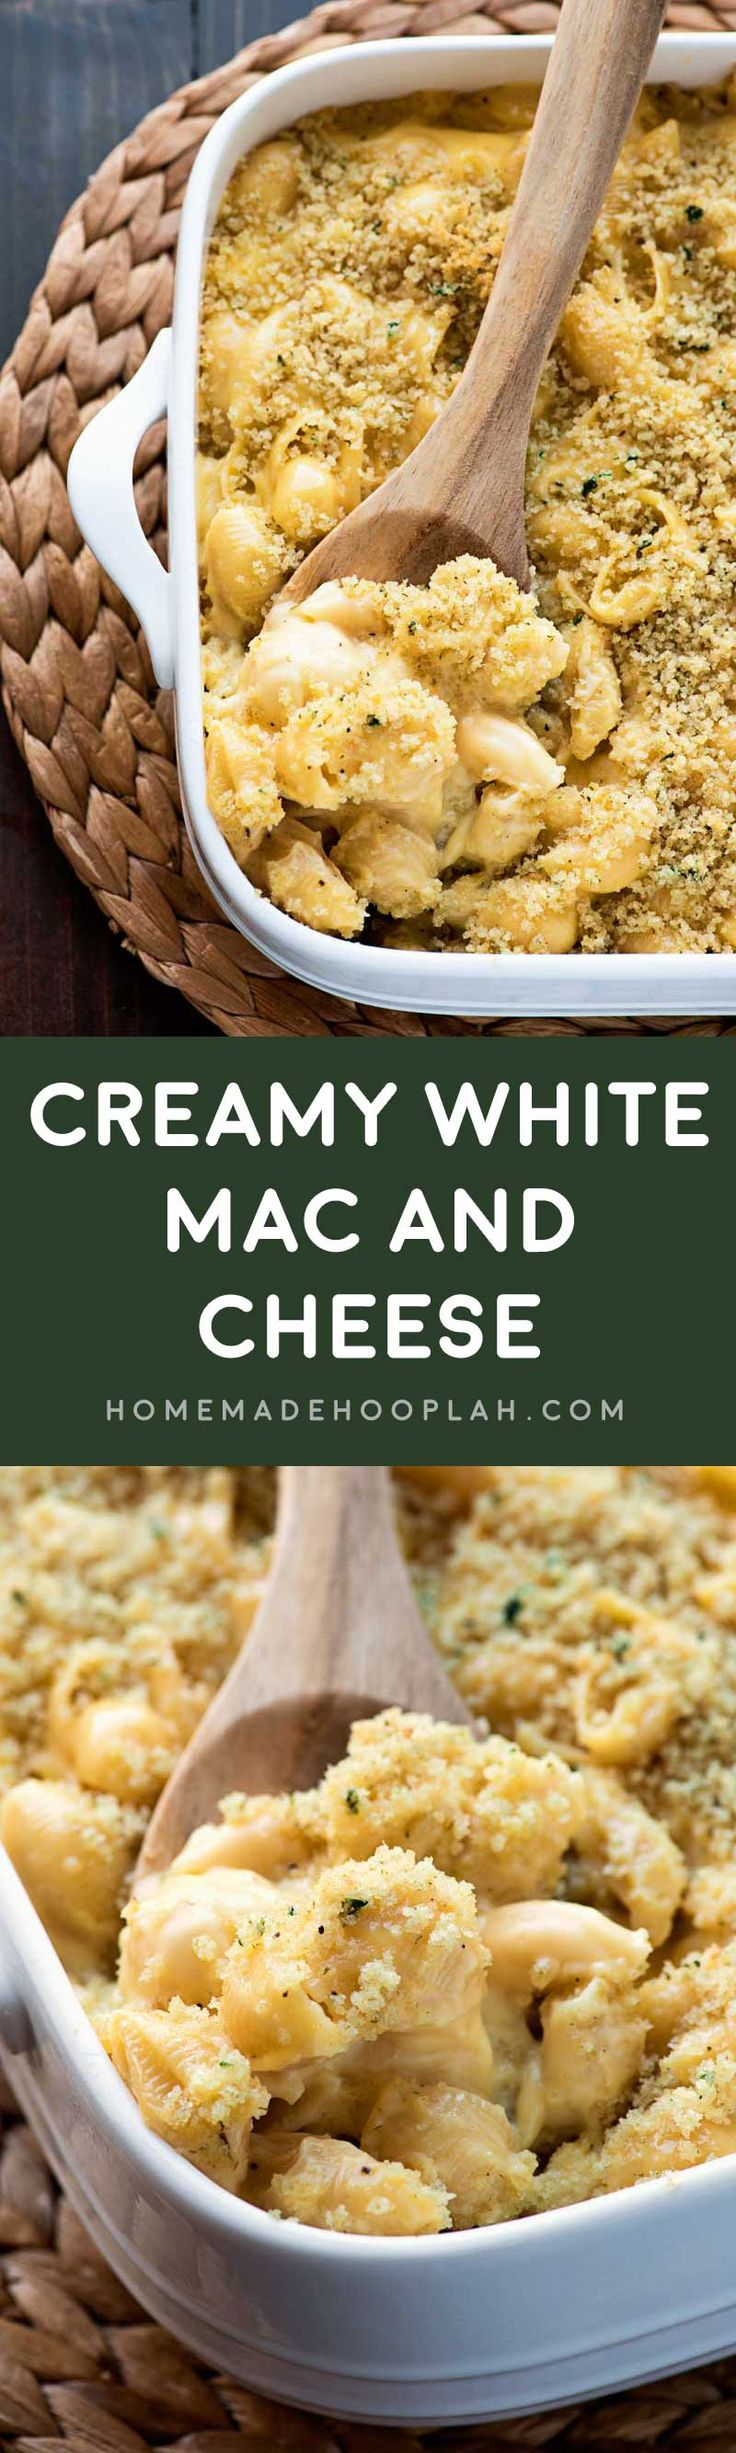 Mac And Cheese on Pinterest | Macaroni, Macaroni And Cheese and Cheese ...